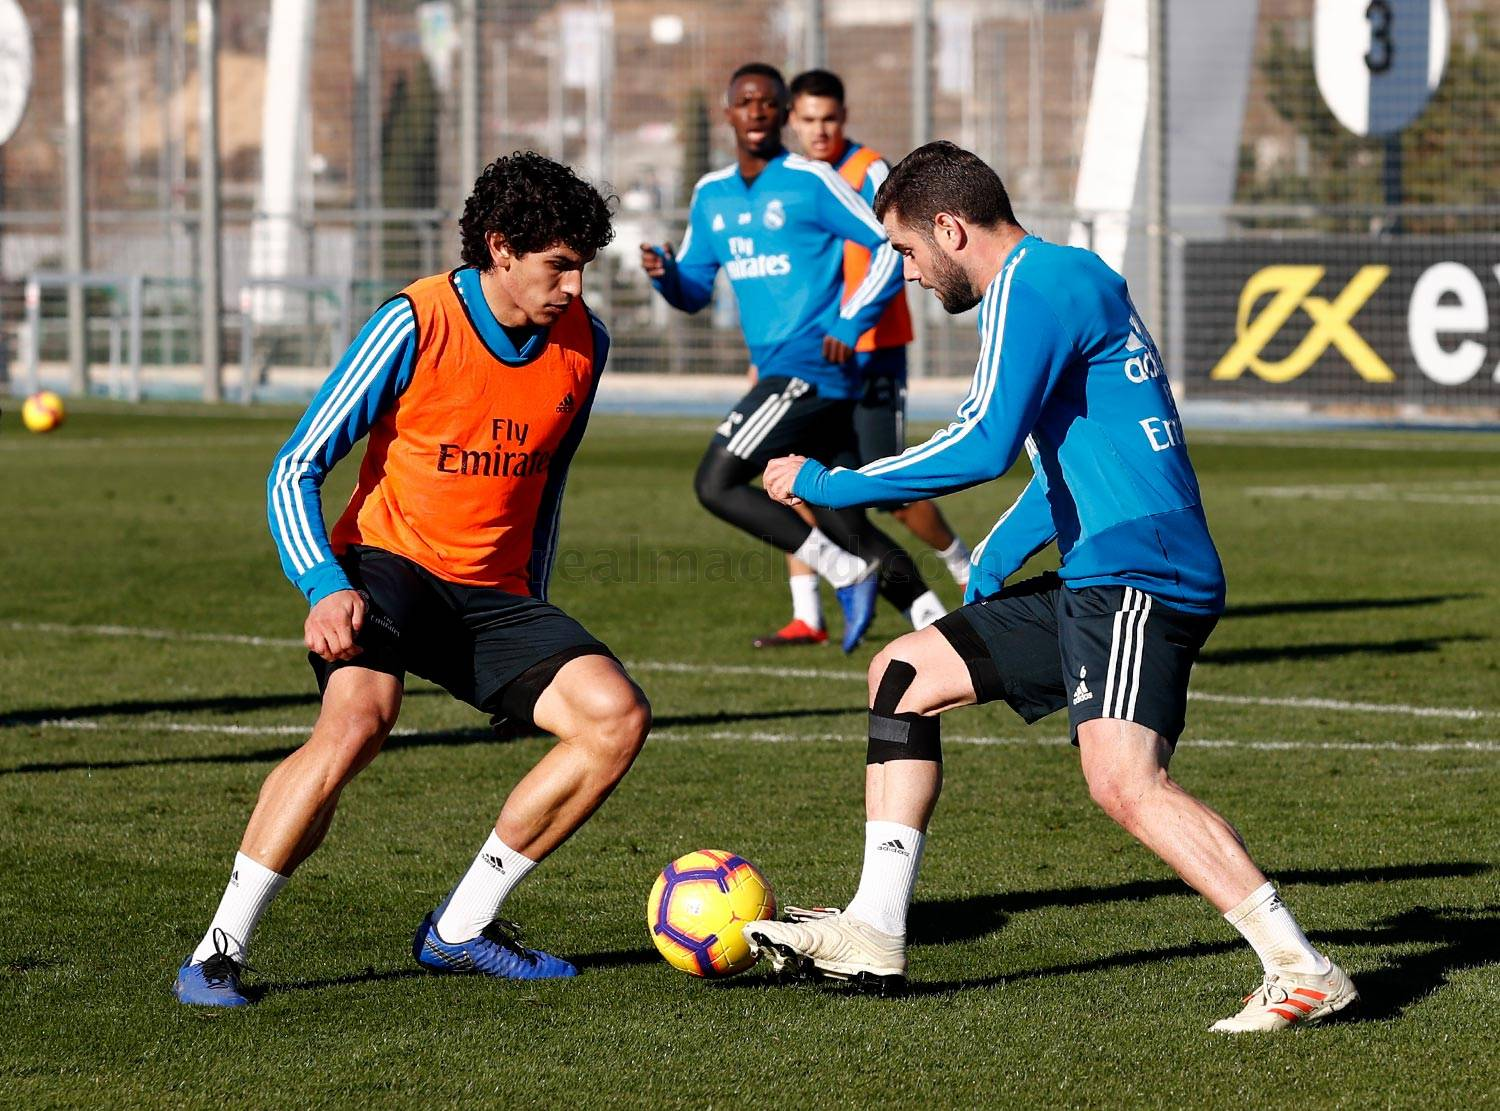 Real Madrid - Entrenamiento del Real Madrid - 04-01-2019